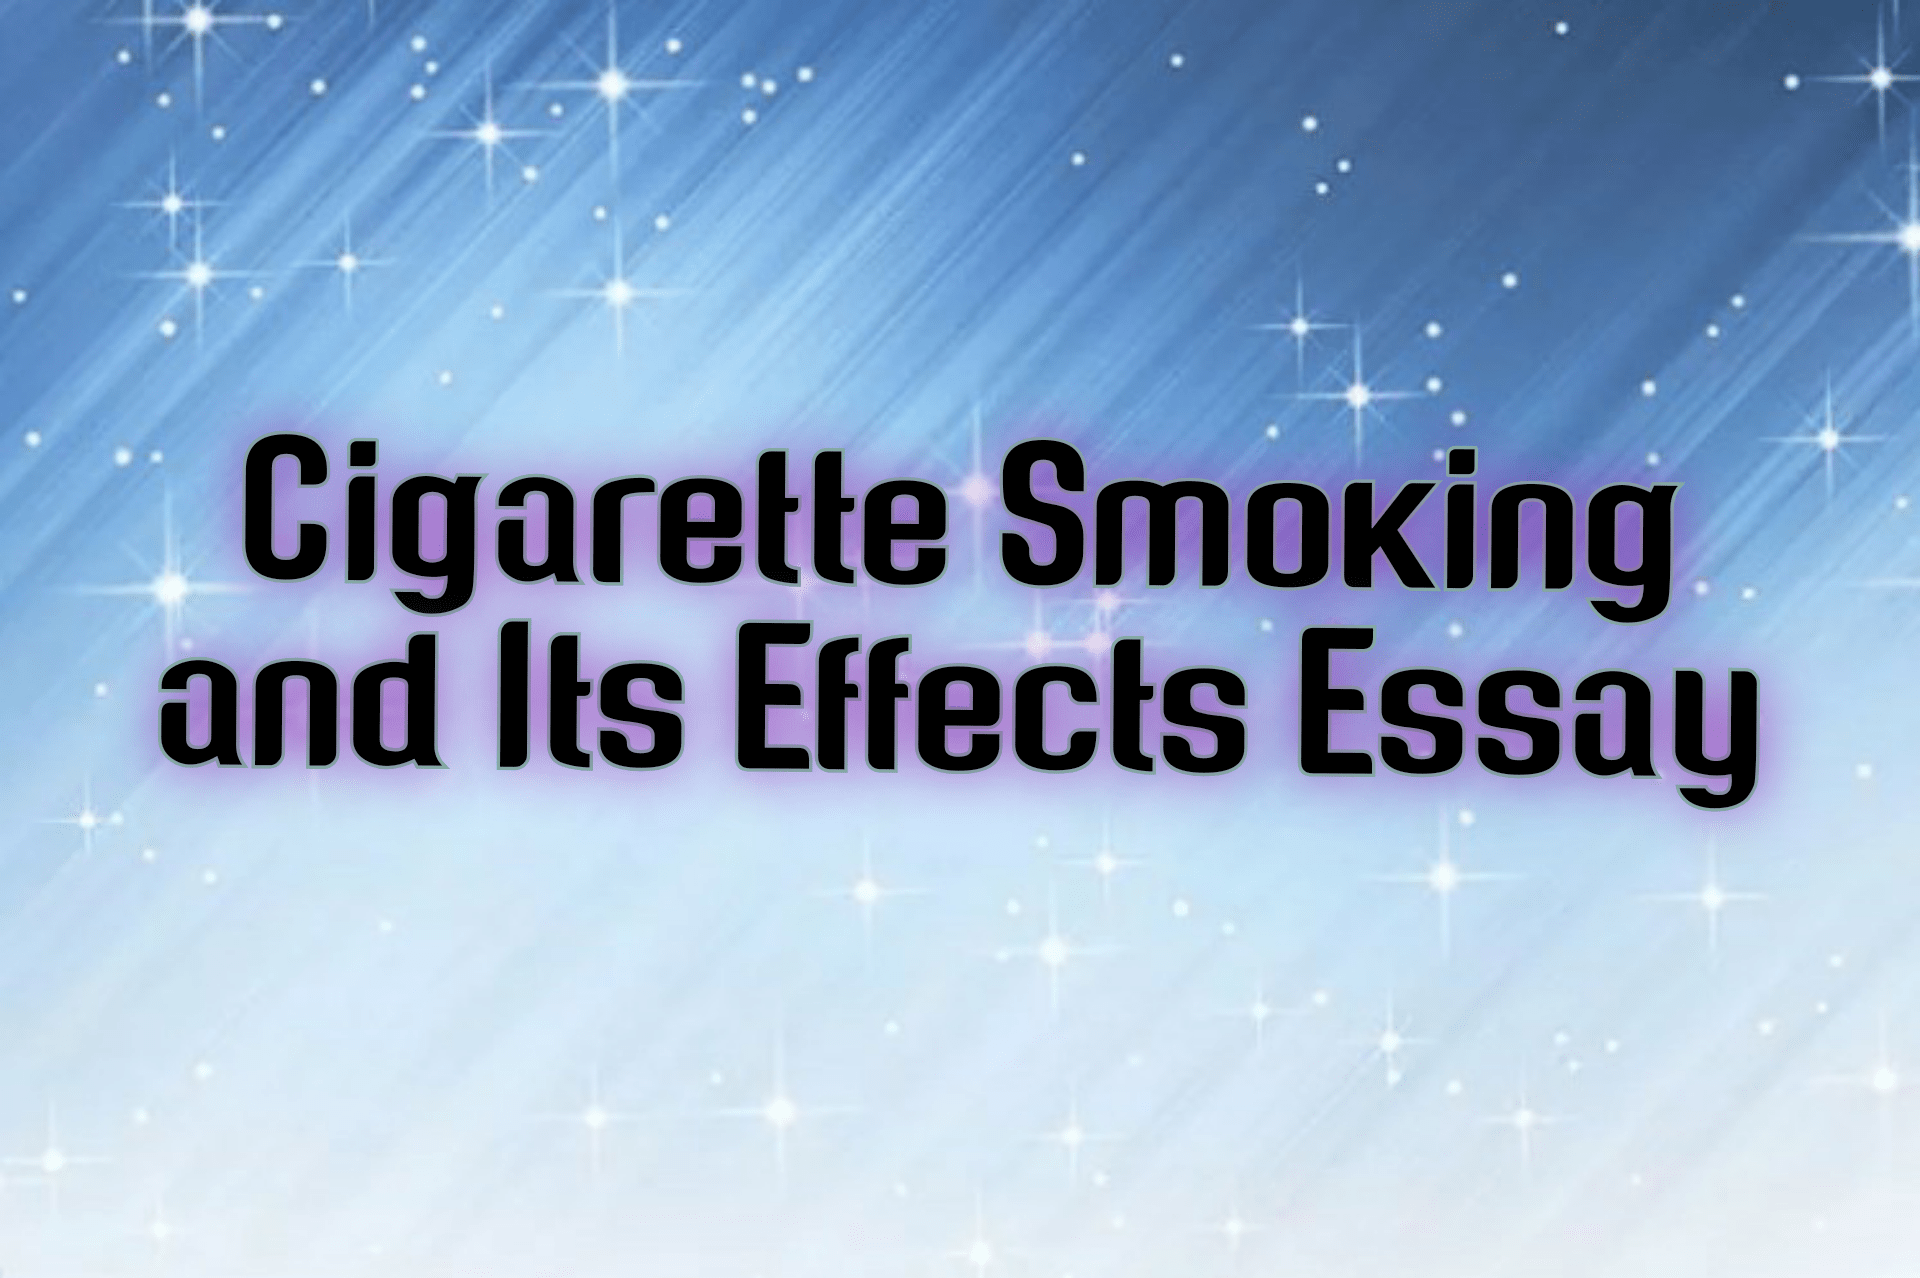 Cigarette Smoking and Its Effects Essay 9